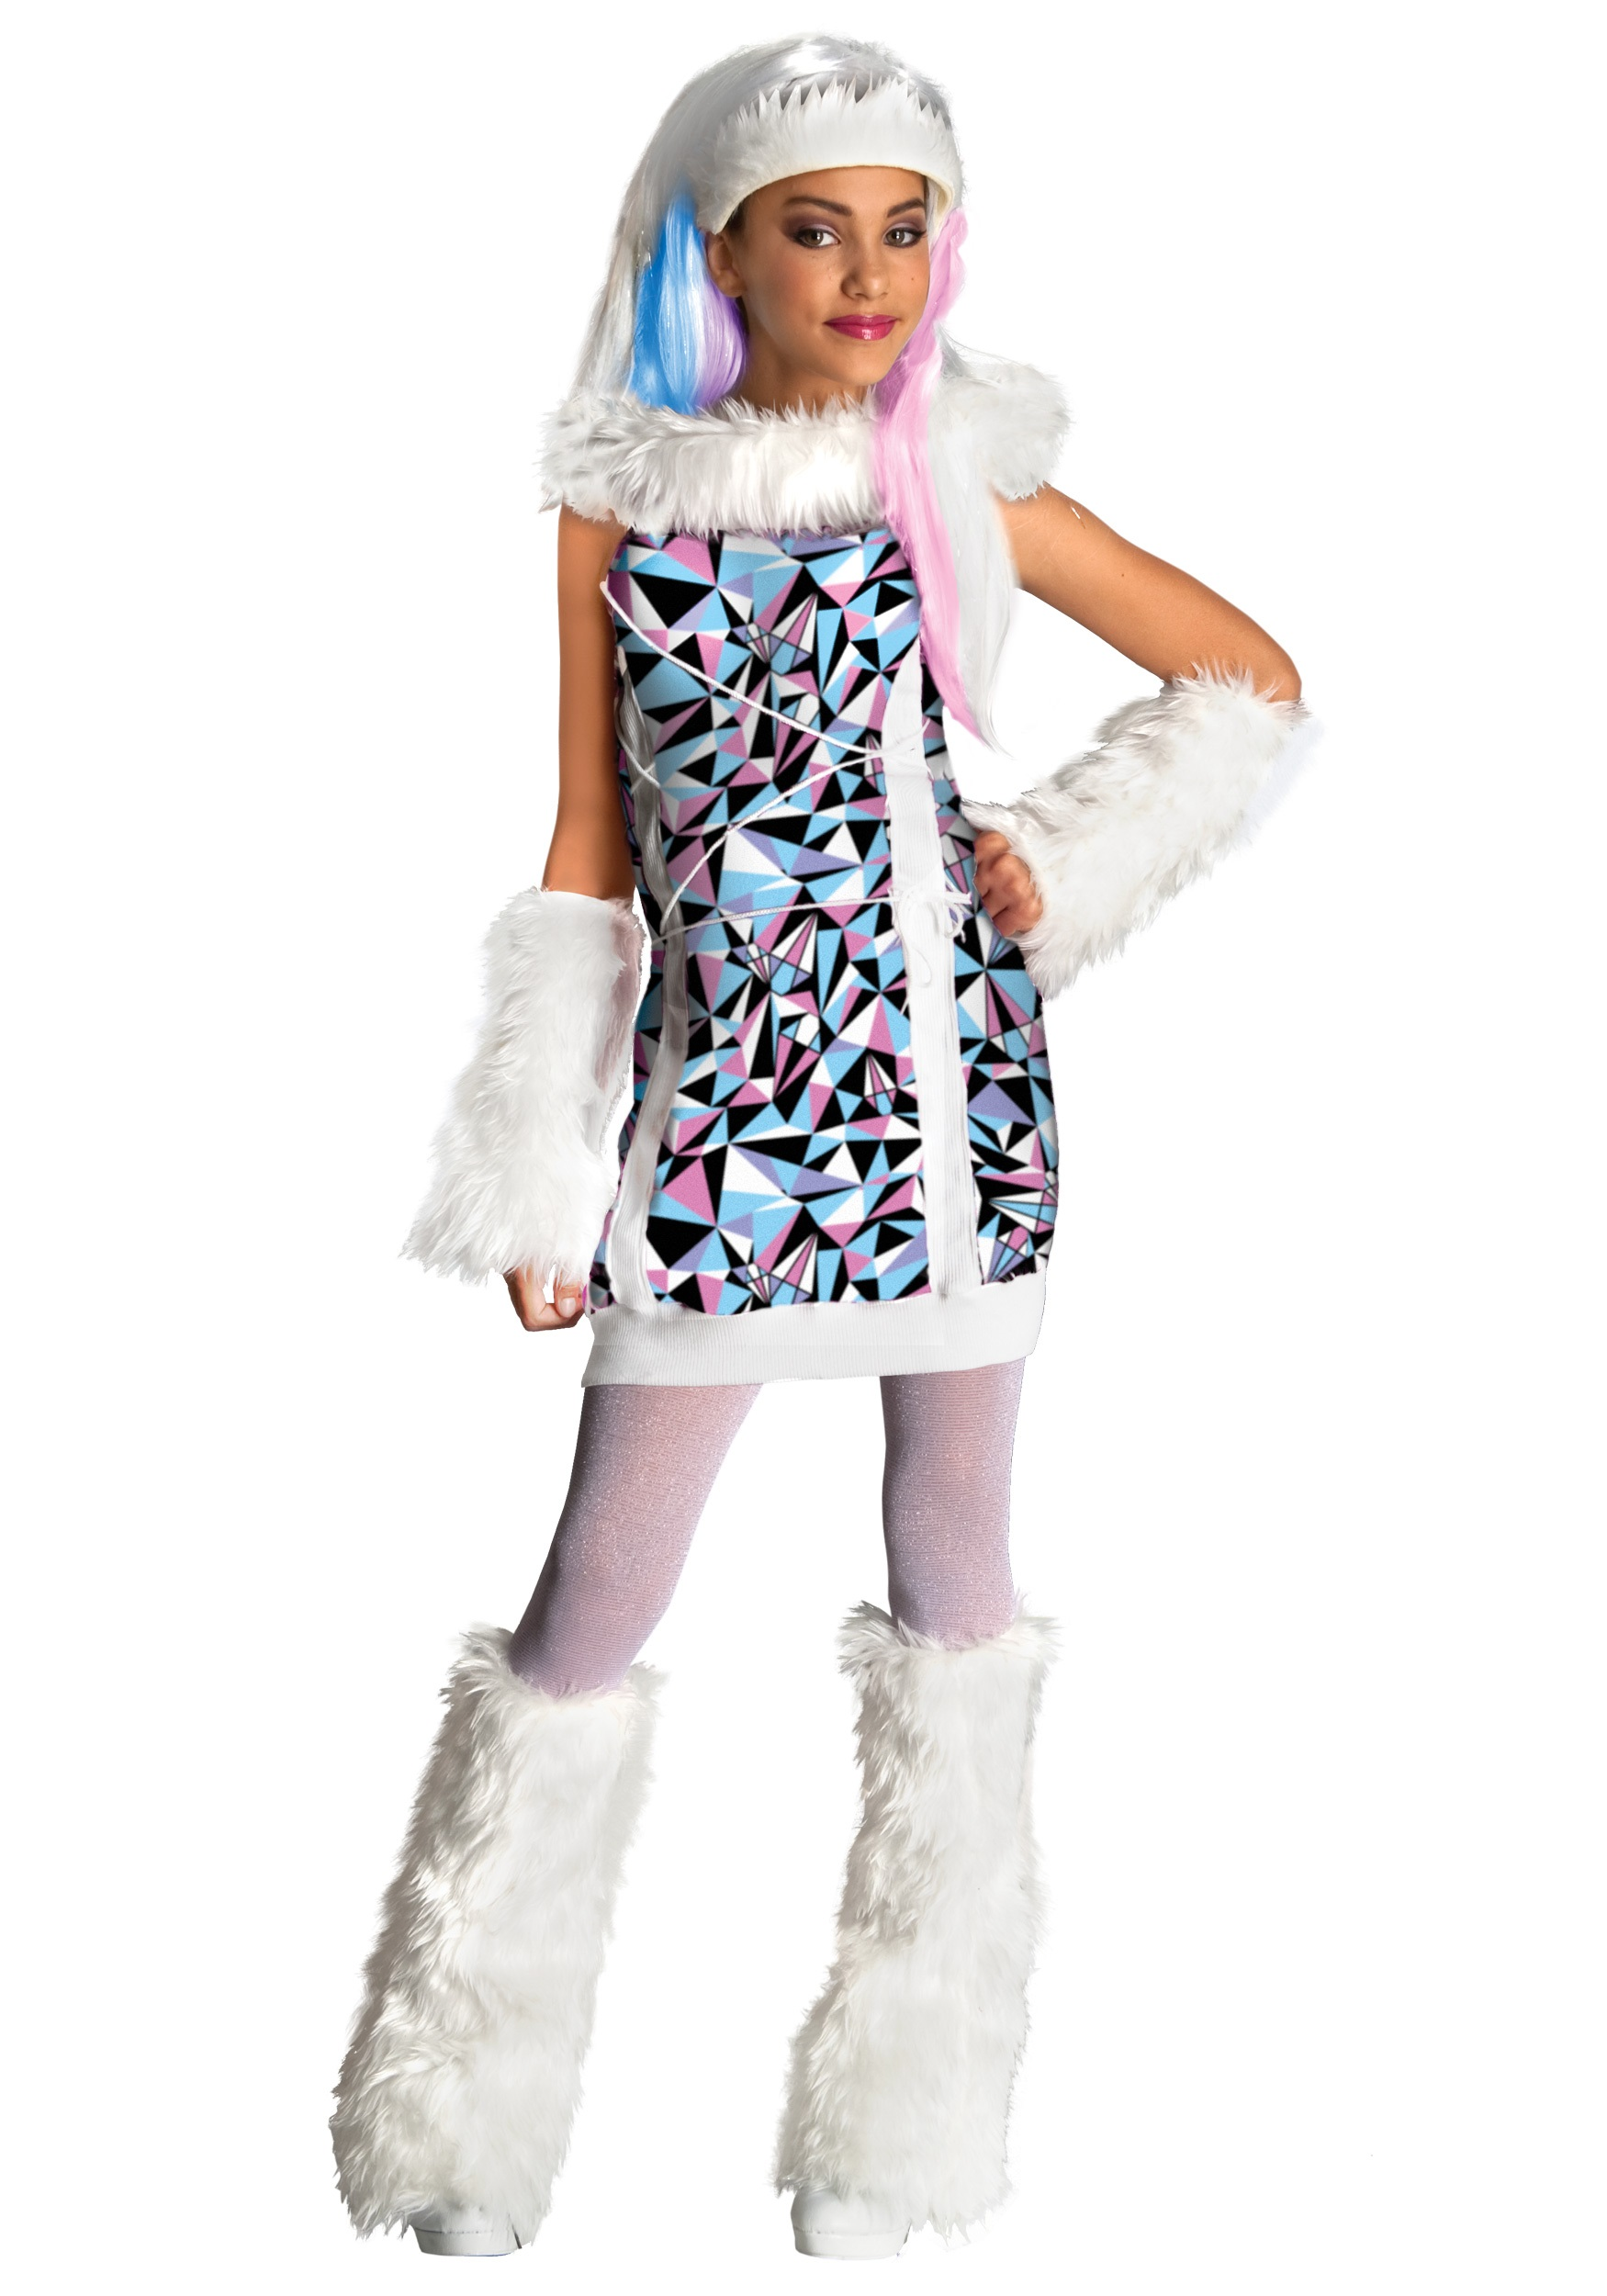 Kids Abbey Bominable Costume